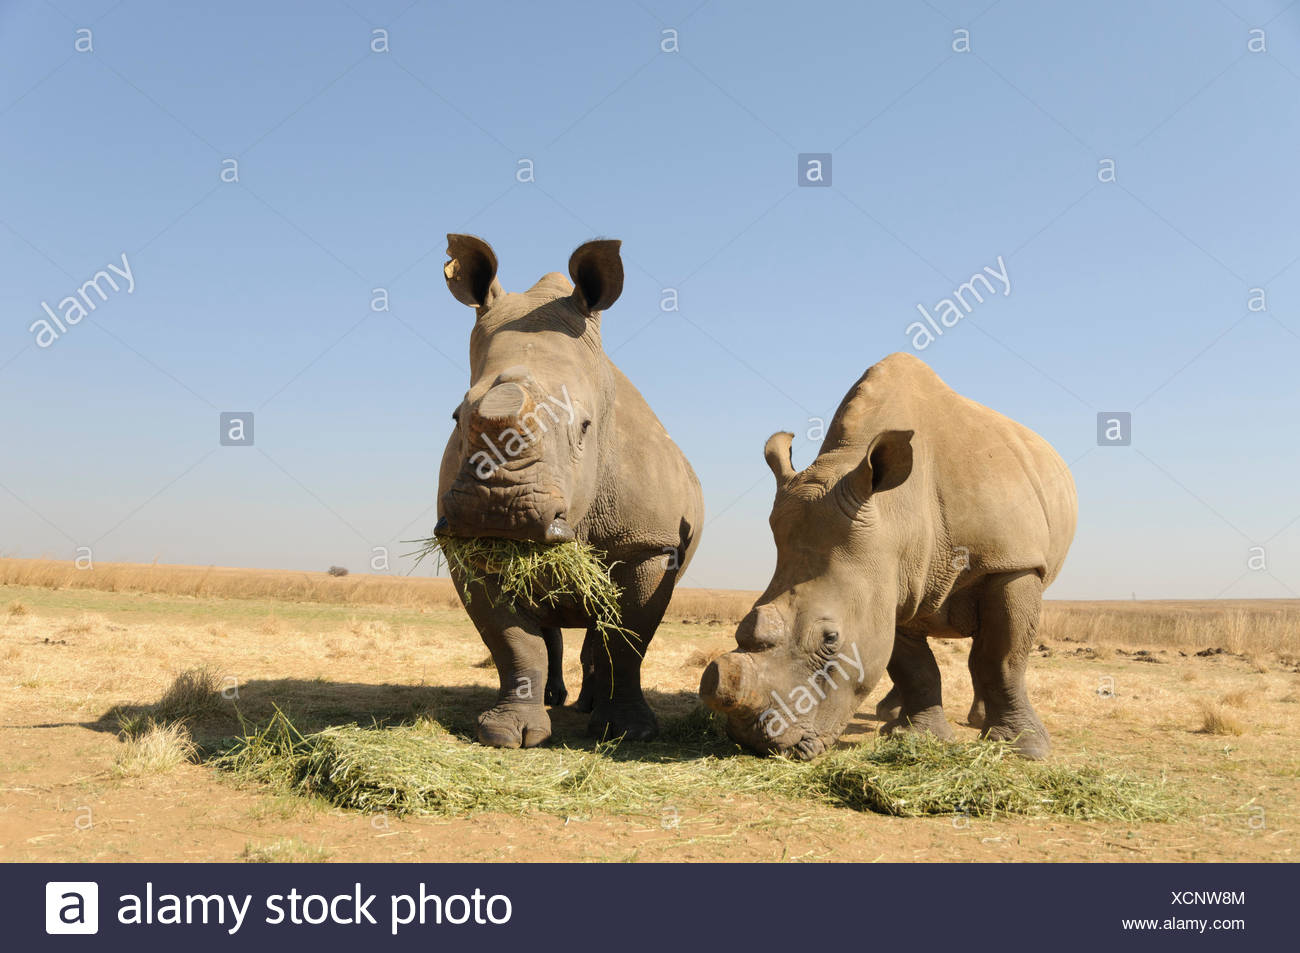 White Rhinos (Ceratotherium simum) with sawed-off horns being fed during the dry season, Rietvlei Nature Reserve, near Pretoria - Stock Image